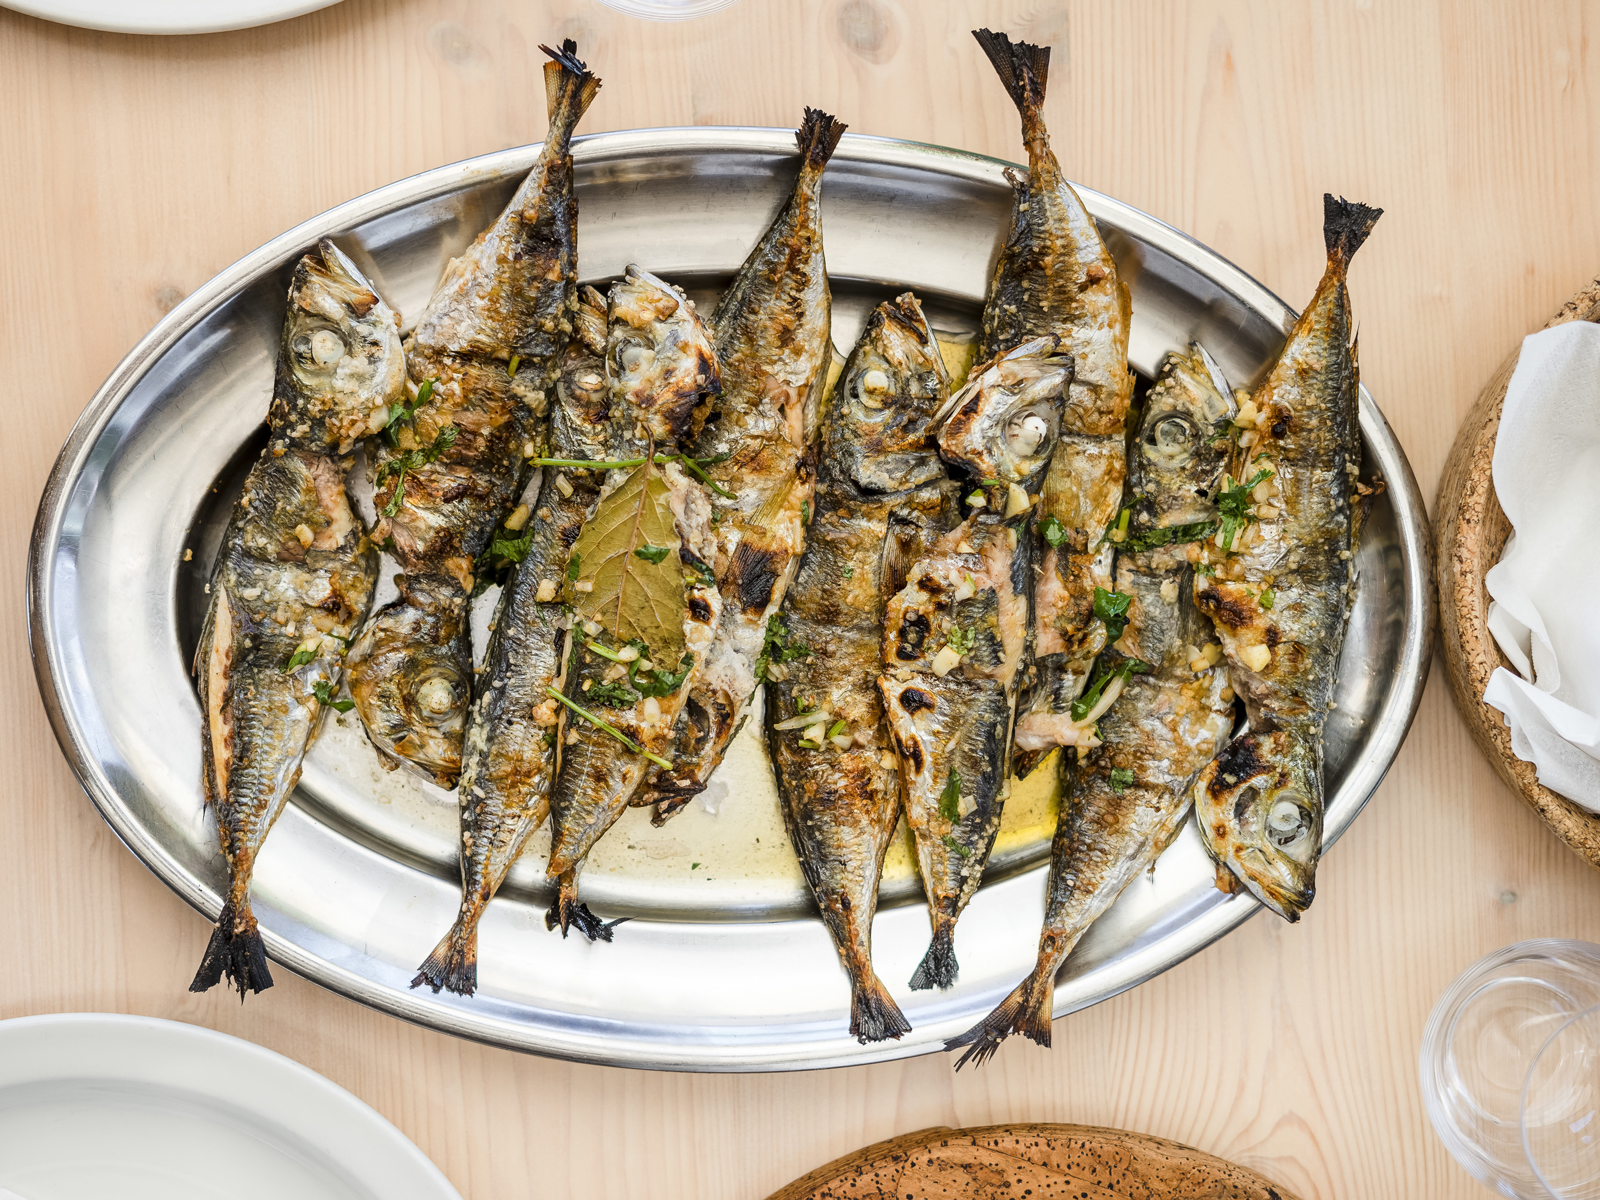 Both canned and grilled sardines are to be found on most menus in Lisbon and Porto